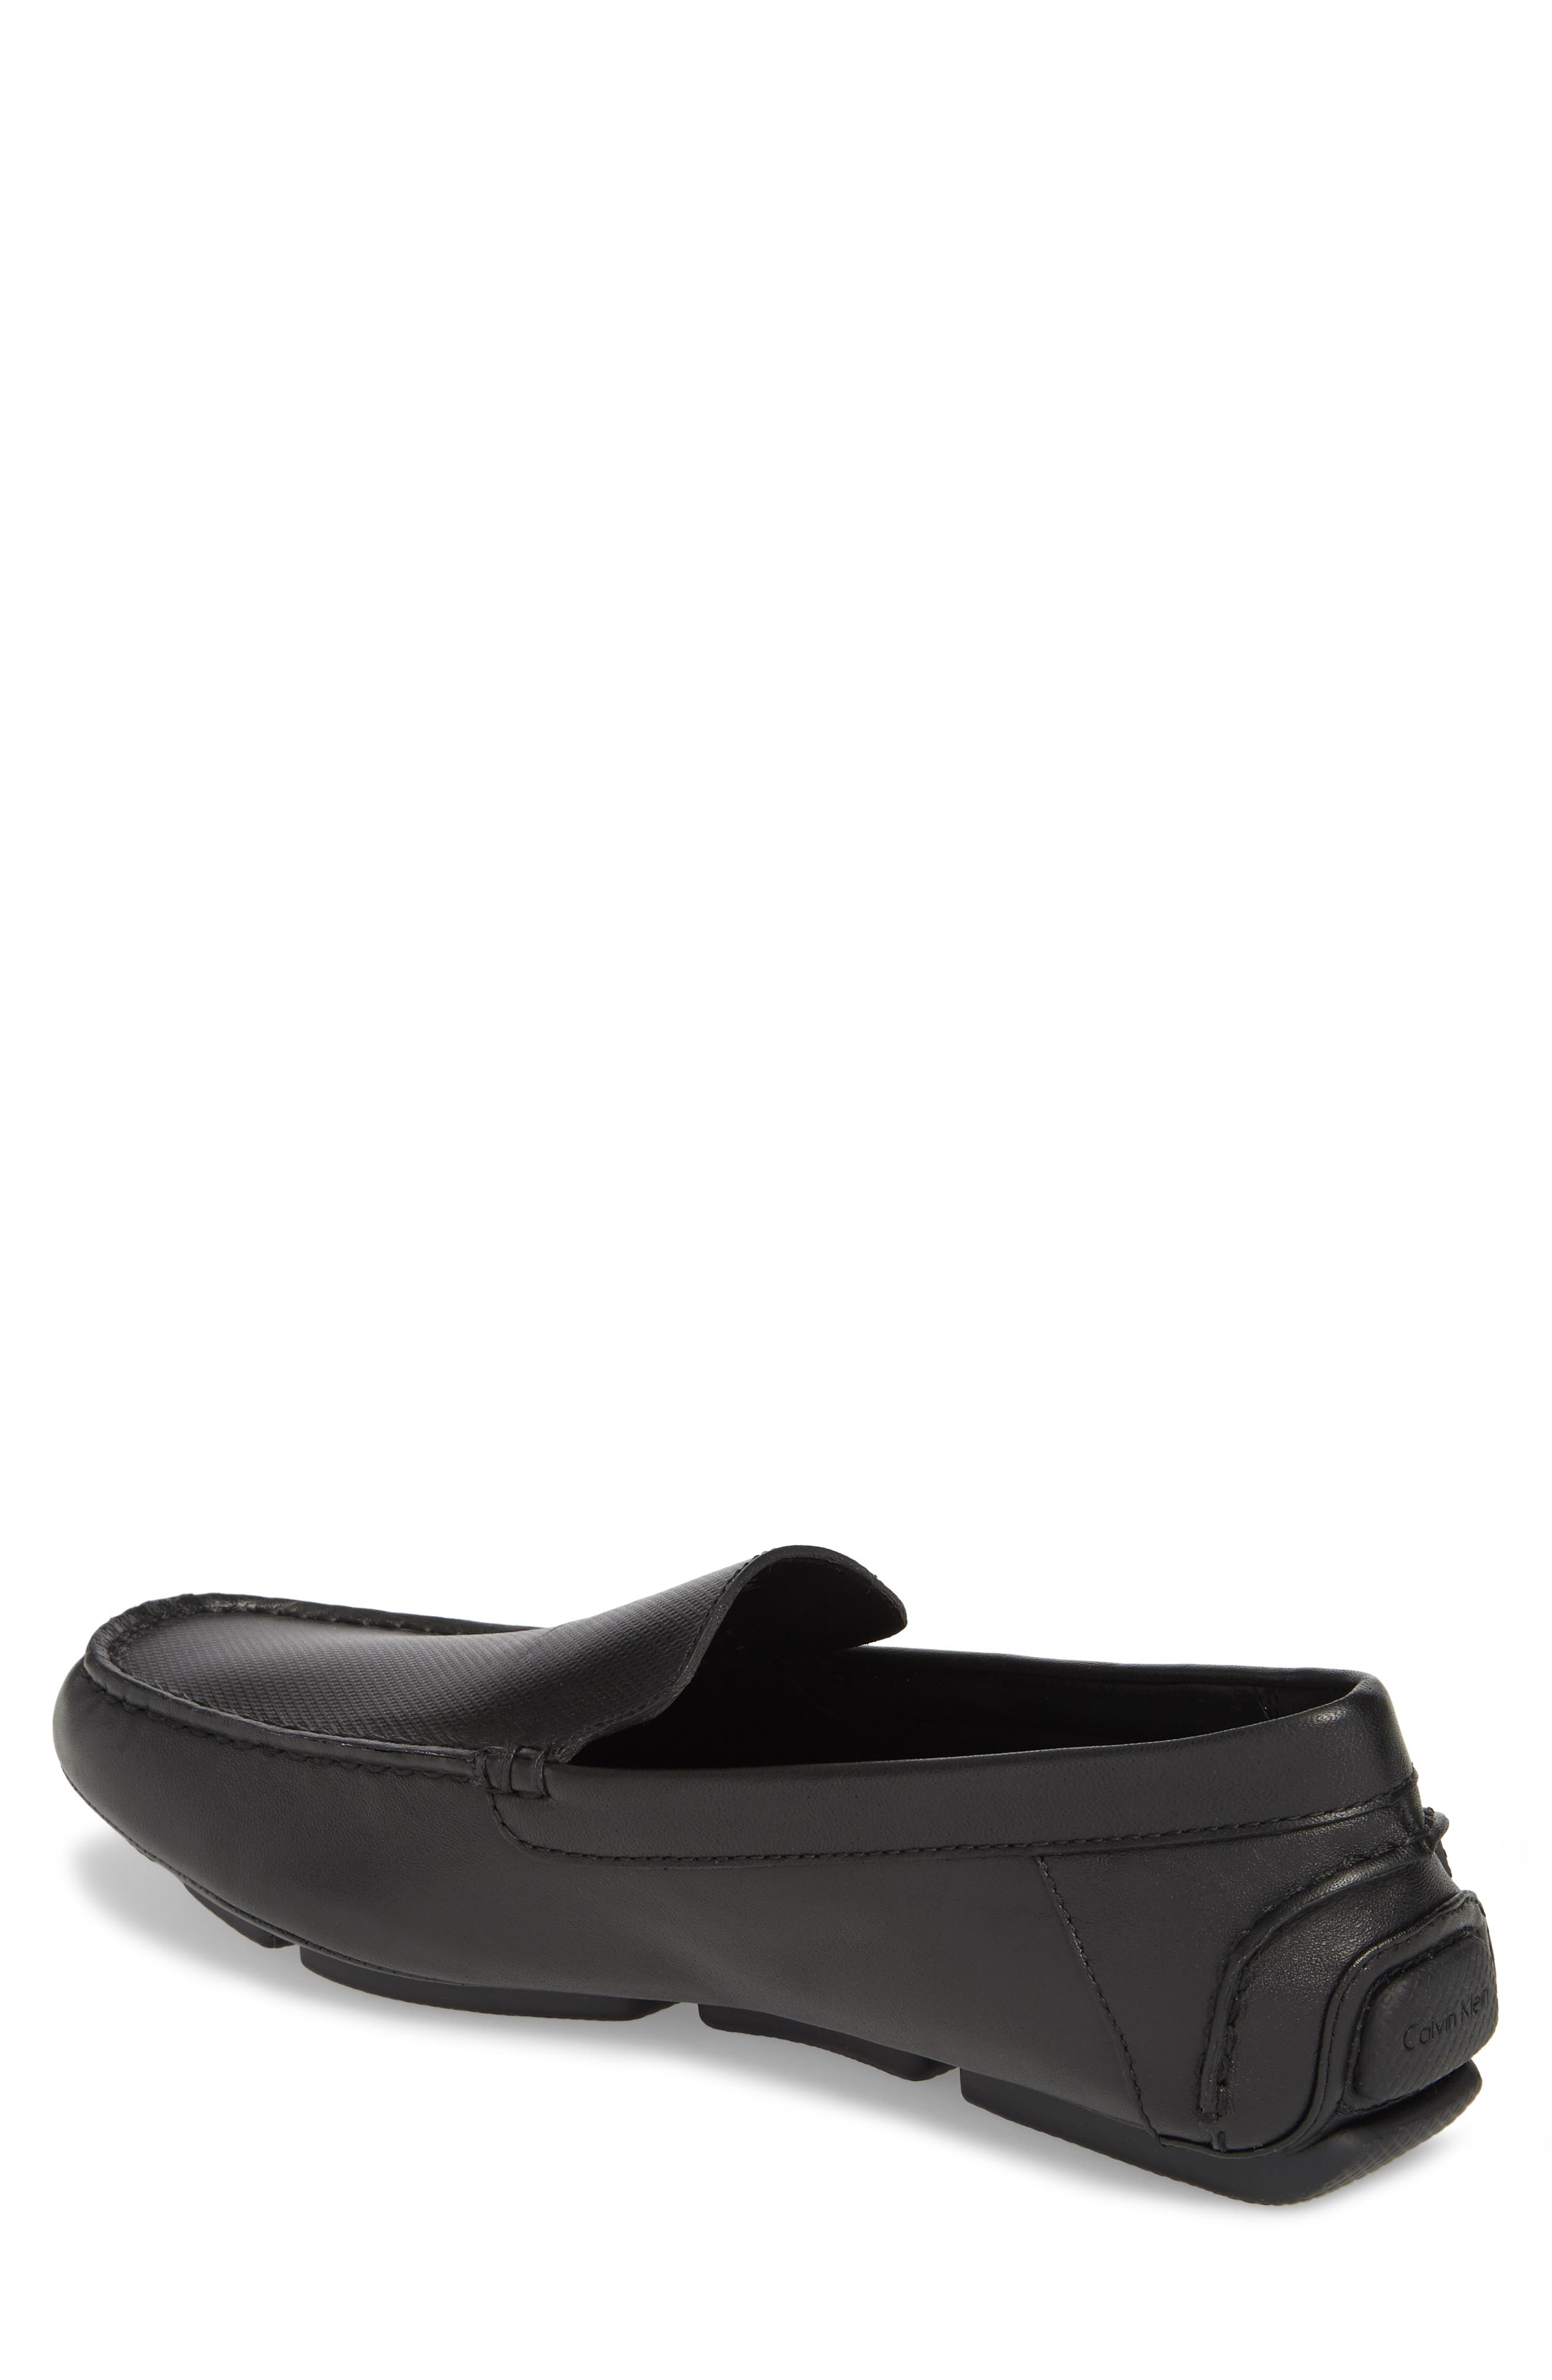 Miguel Textured Driving Loafer,                             Alternate thumbnail 2, color,                             001